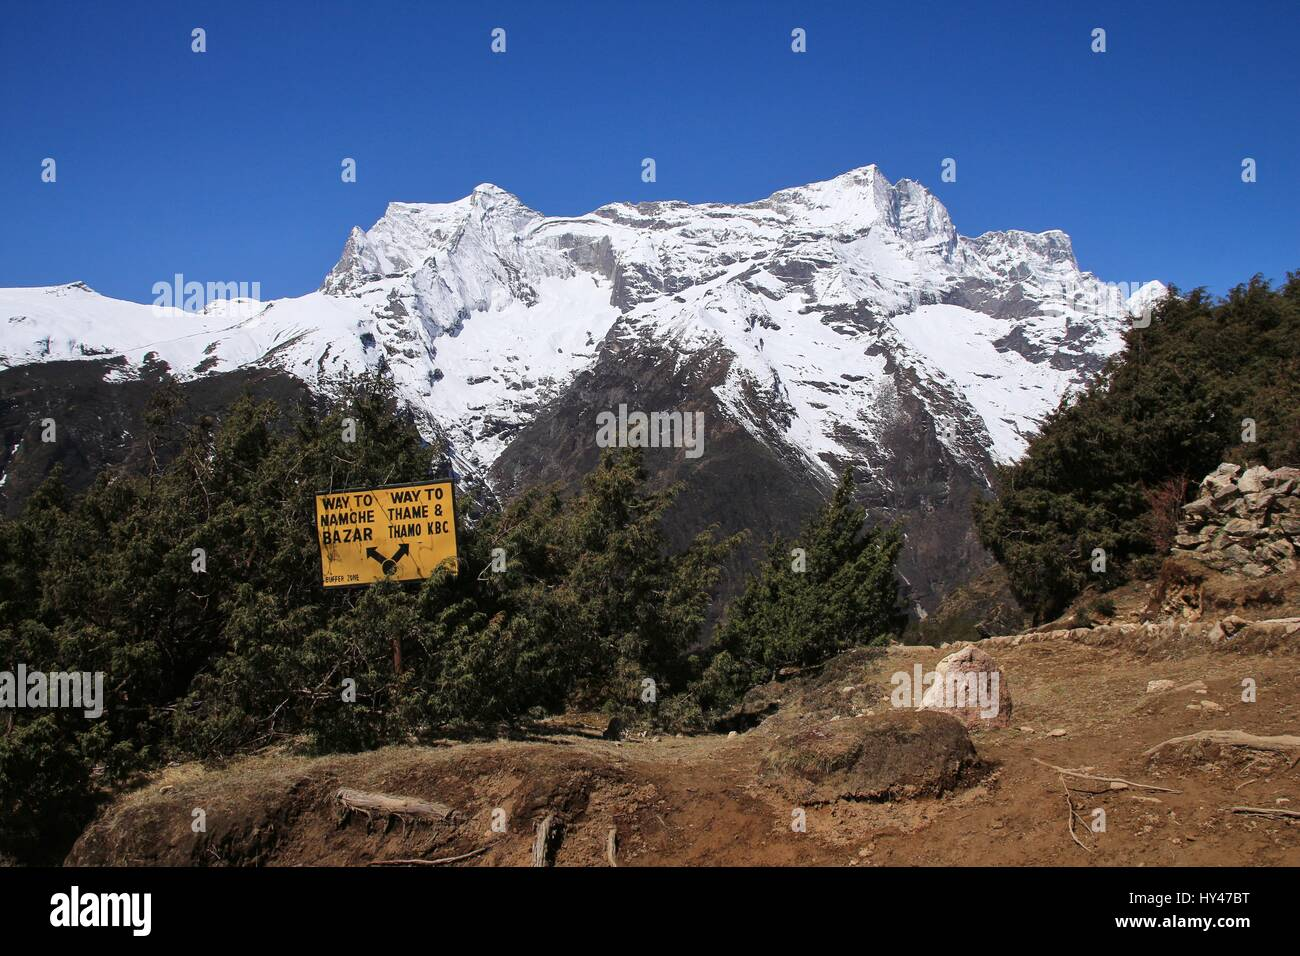 Directional sign and snow capped mountain. Scene near Namche Bazar, Everest National Park. - Stock Image